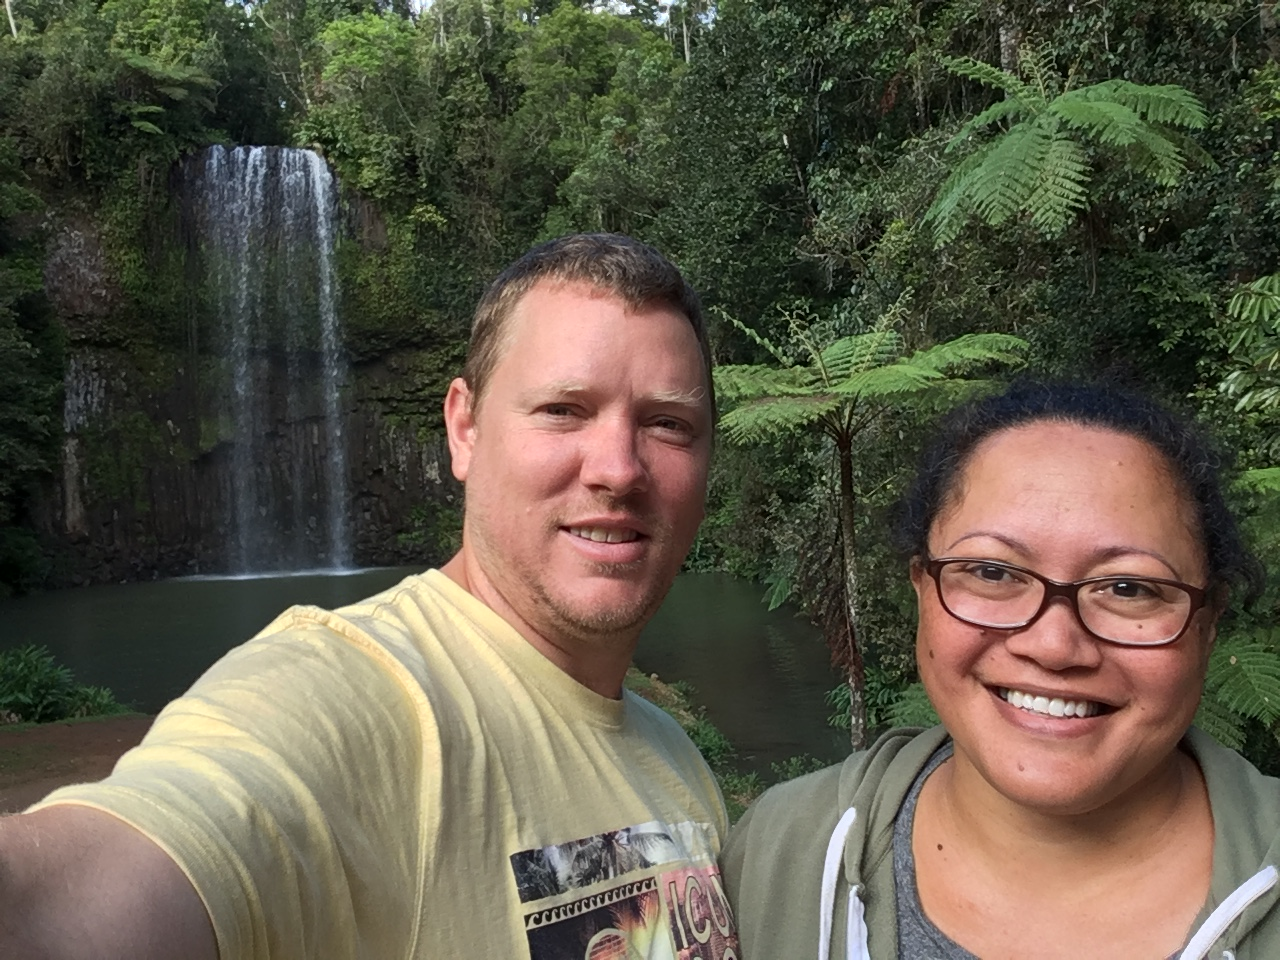 Ravenshoe Railway Caravan Park - we stayed at the Ravenshoe Railway Caravan Park for nine days and the did the waterfall circuit (driving) while we were there.